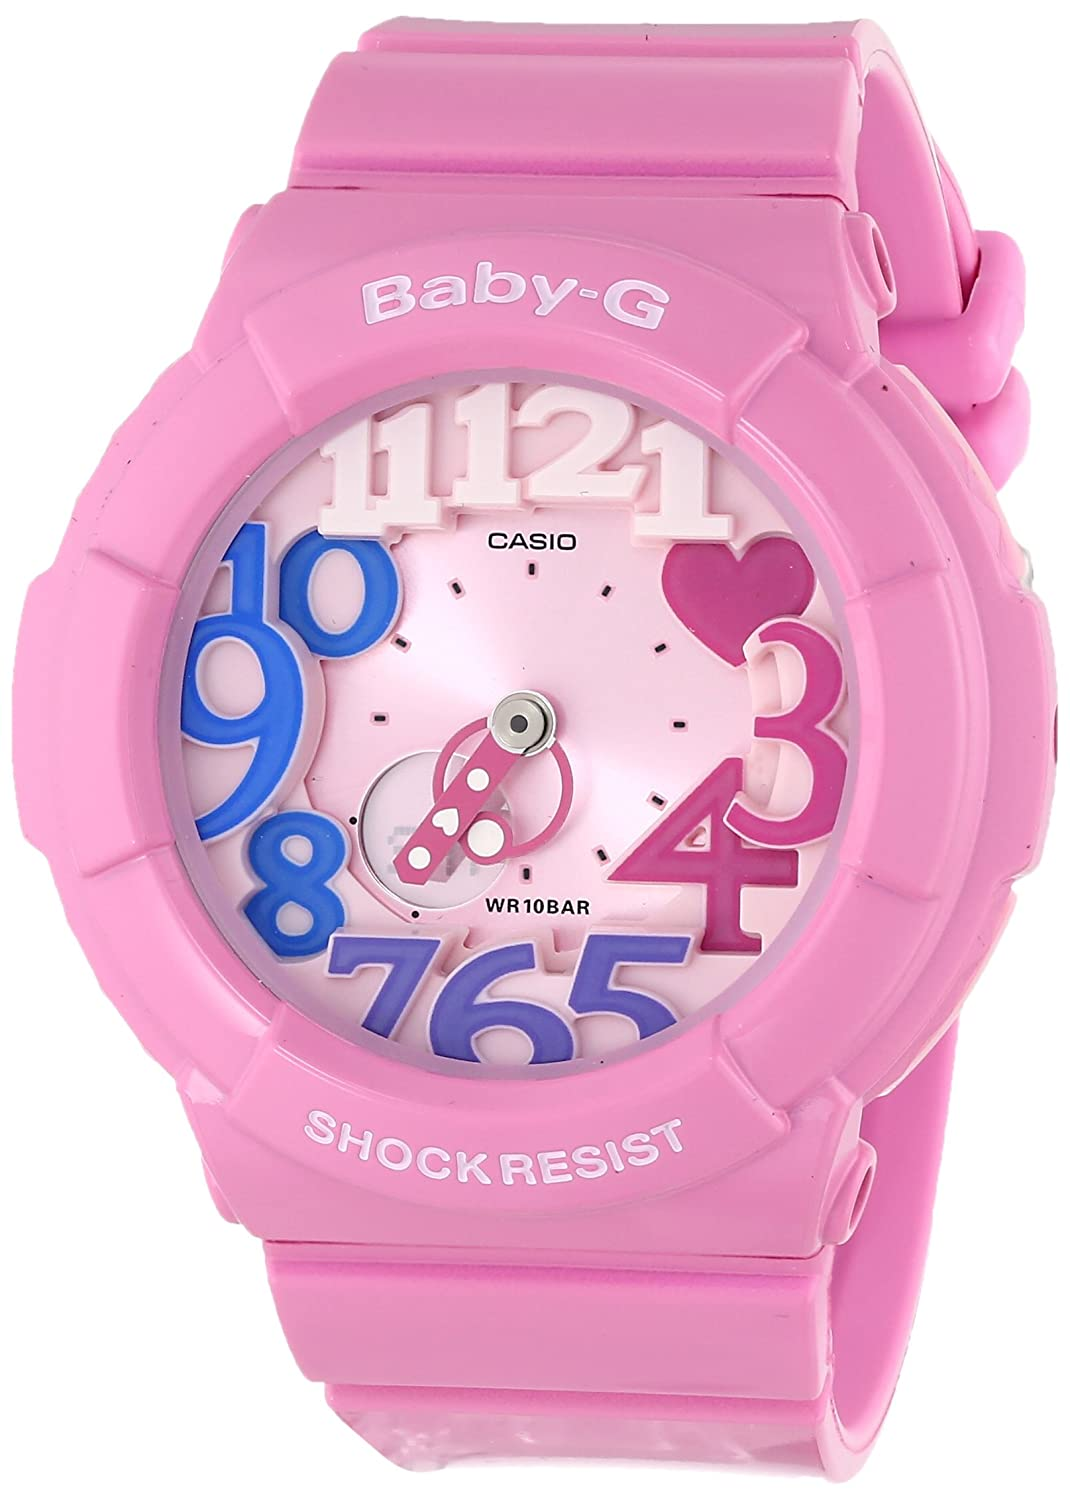 f7b81744f58 Top 10 Casio Baby-G Shock Resistant Watches for Women 2016-2017 on ...